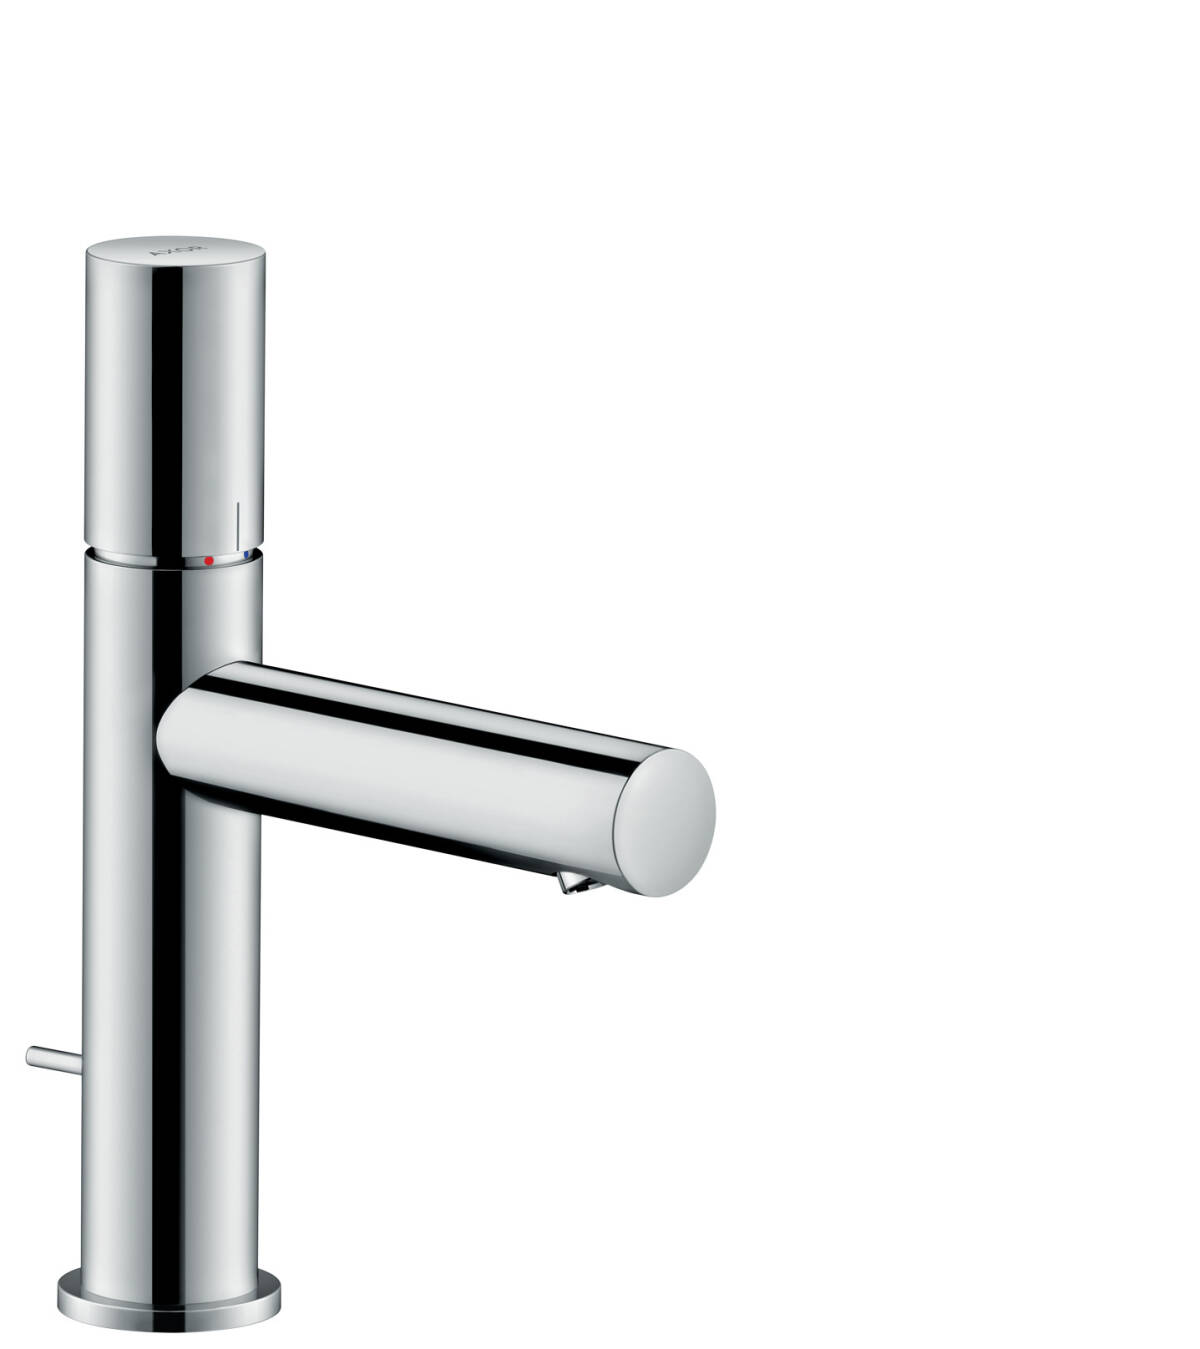 Single lever basin mixer 110 with zero handle with pop-up waste set, Chrome, 45001000